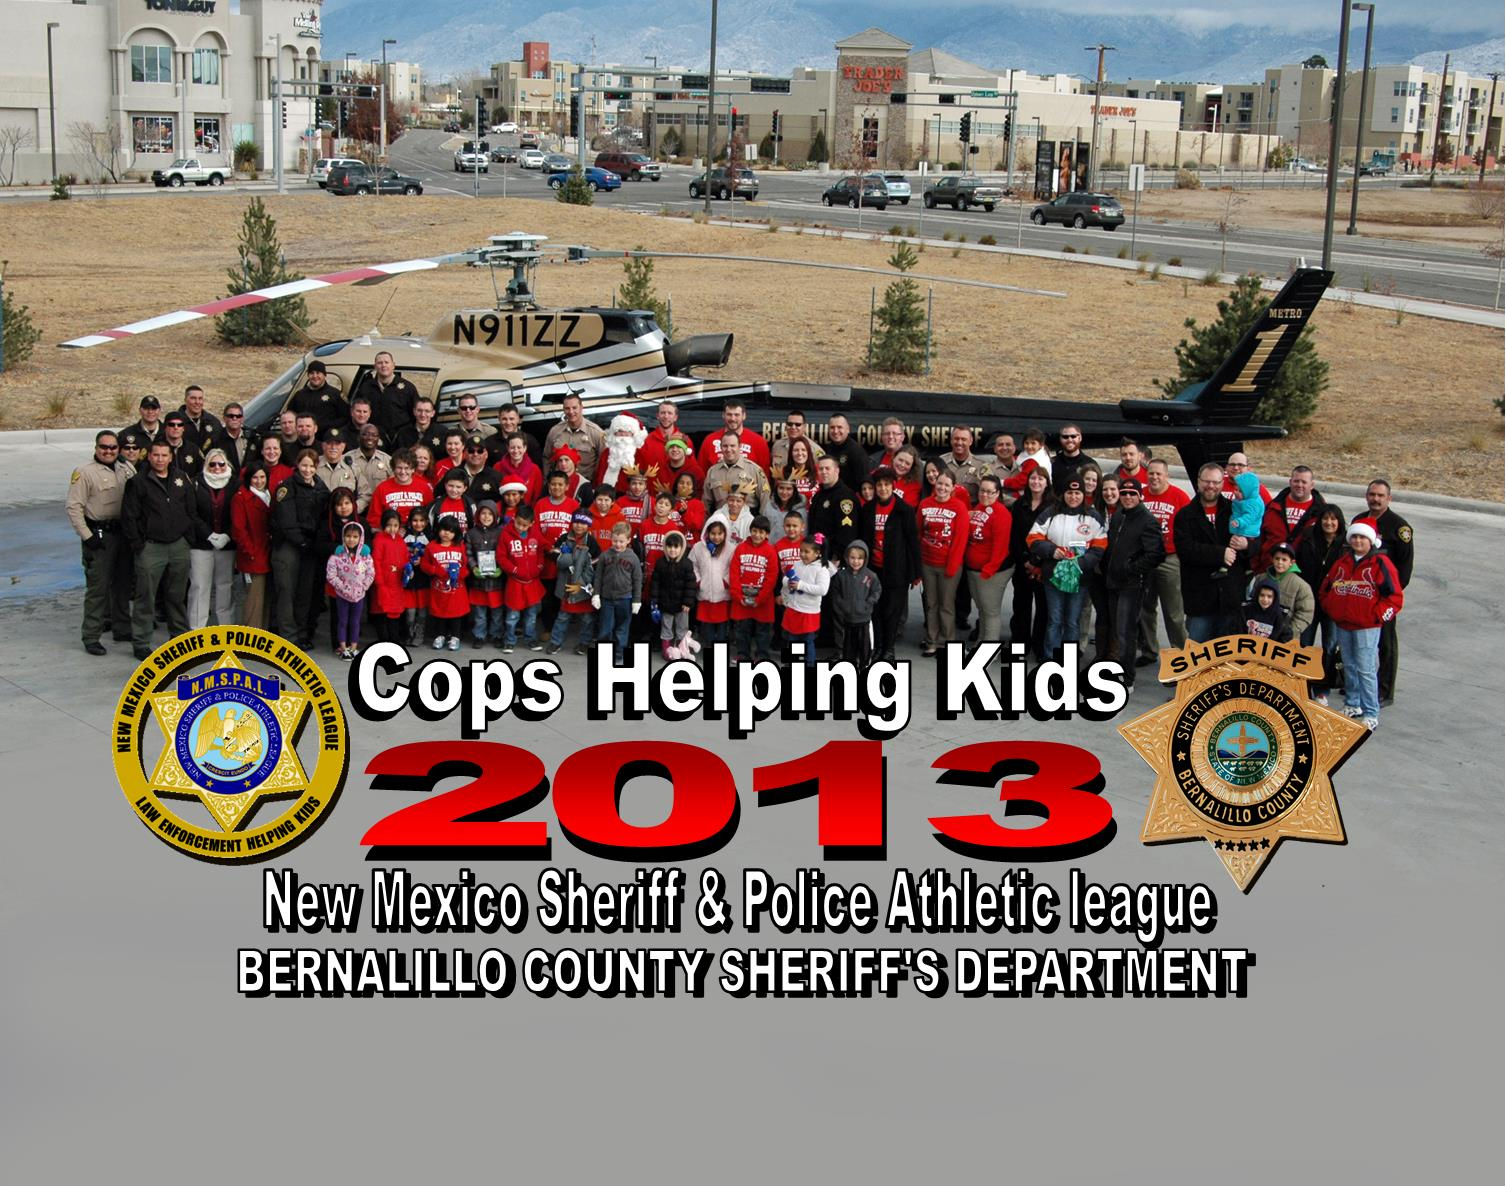 2013 NMSPAL Cops for Kids Group Photo